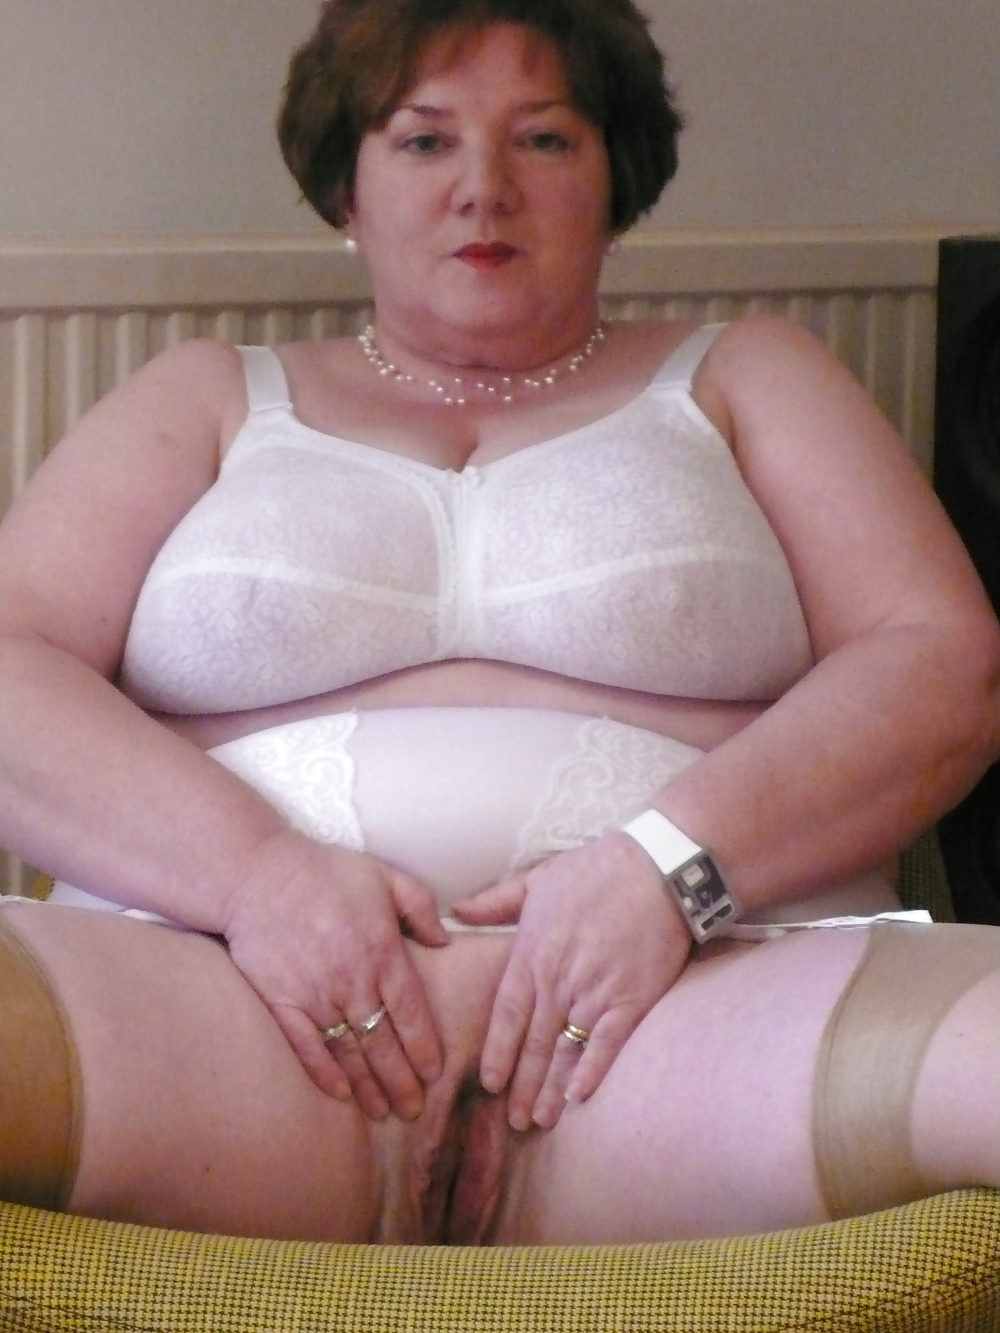 Well, that Mature bbw girdle and stockings already